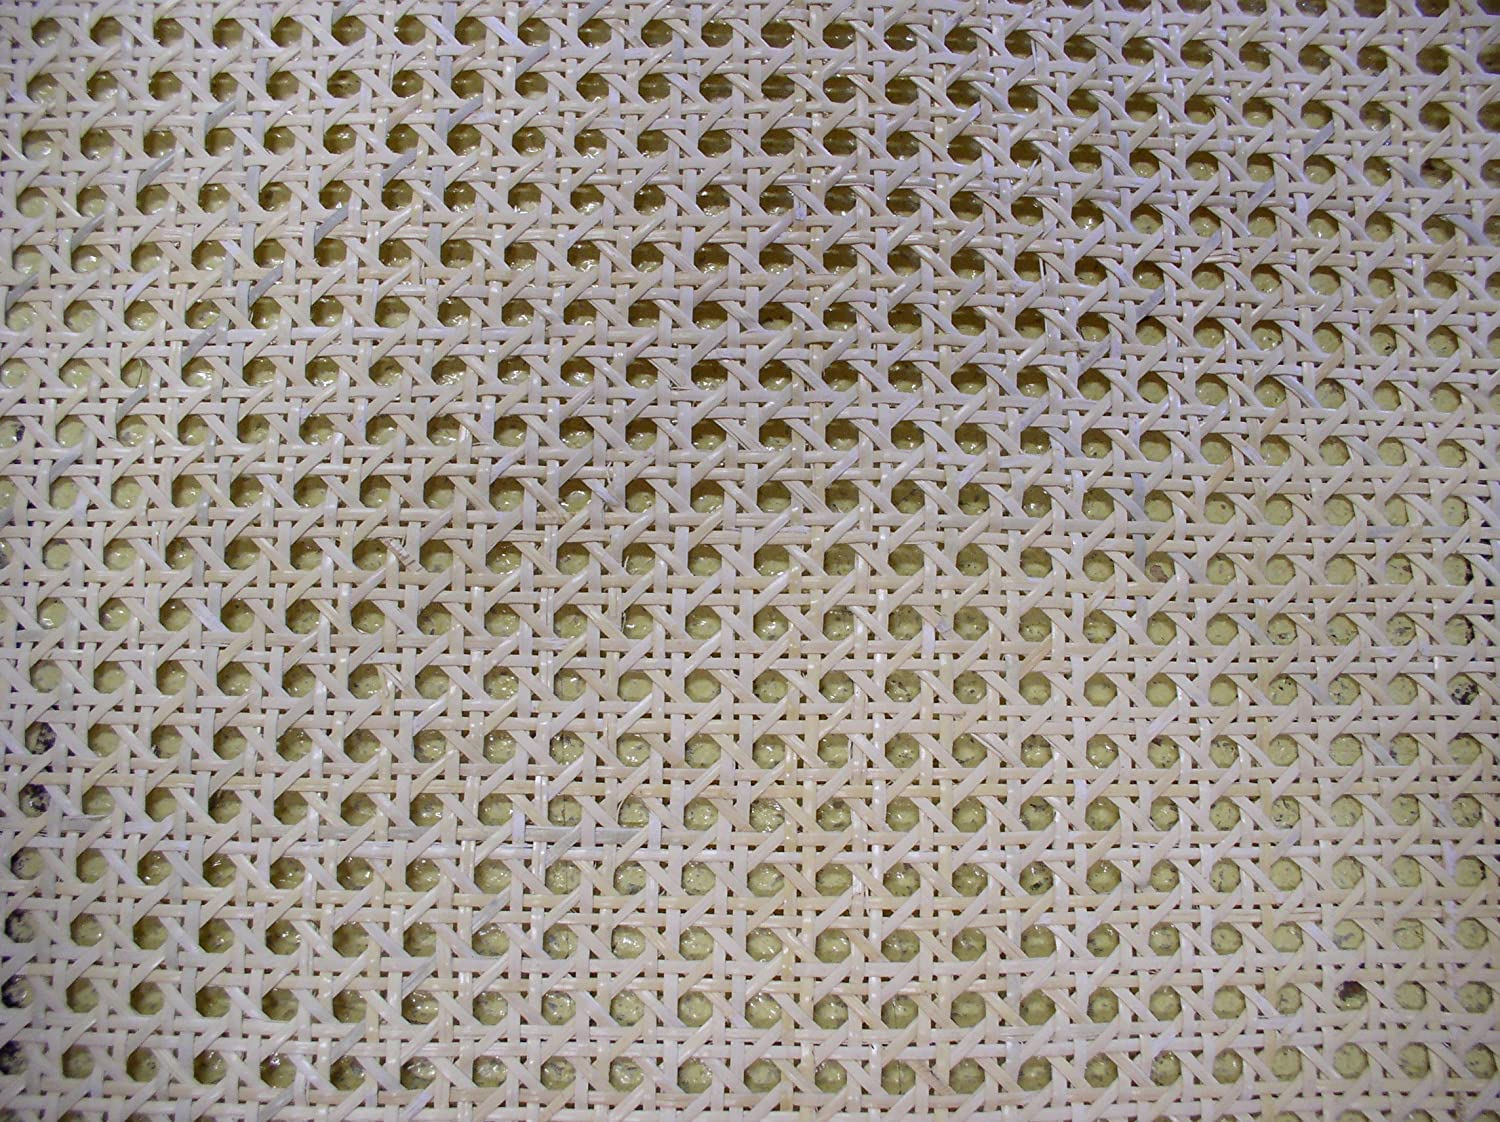 "Cane Webbing Standard Size Fine Open 1/2"" Mesh, 18"" Wide, Sold by The Running Foot, Qty of 1 = 12"", Qty of 2 = 24"", Qty of 3 = 36"" and so on."